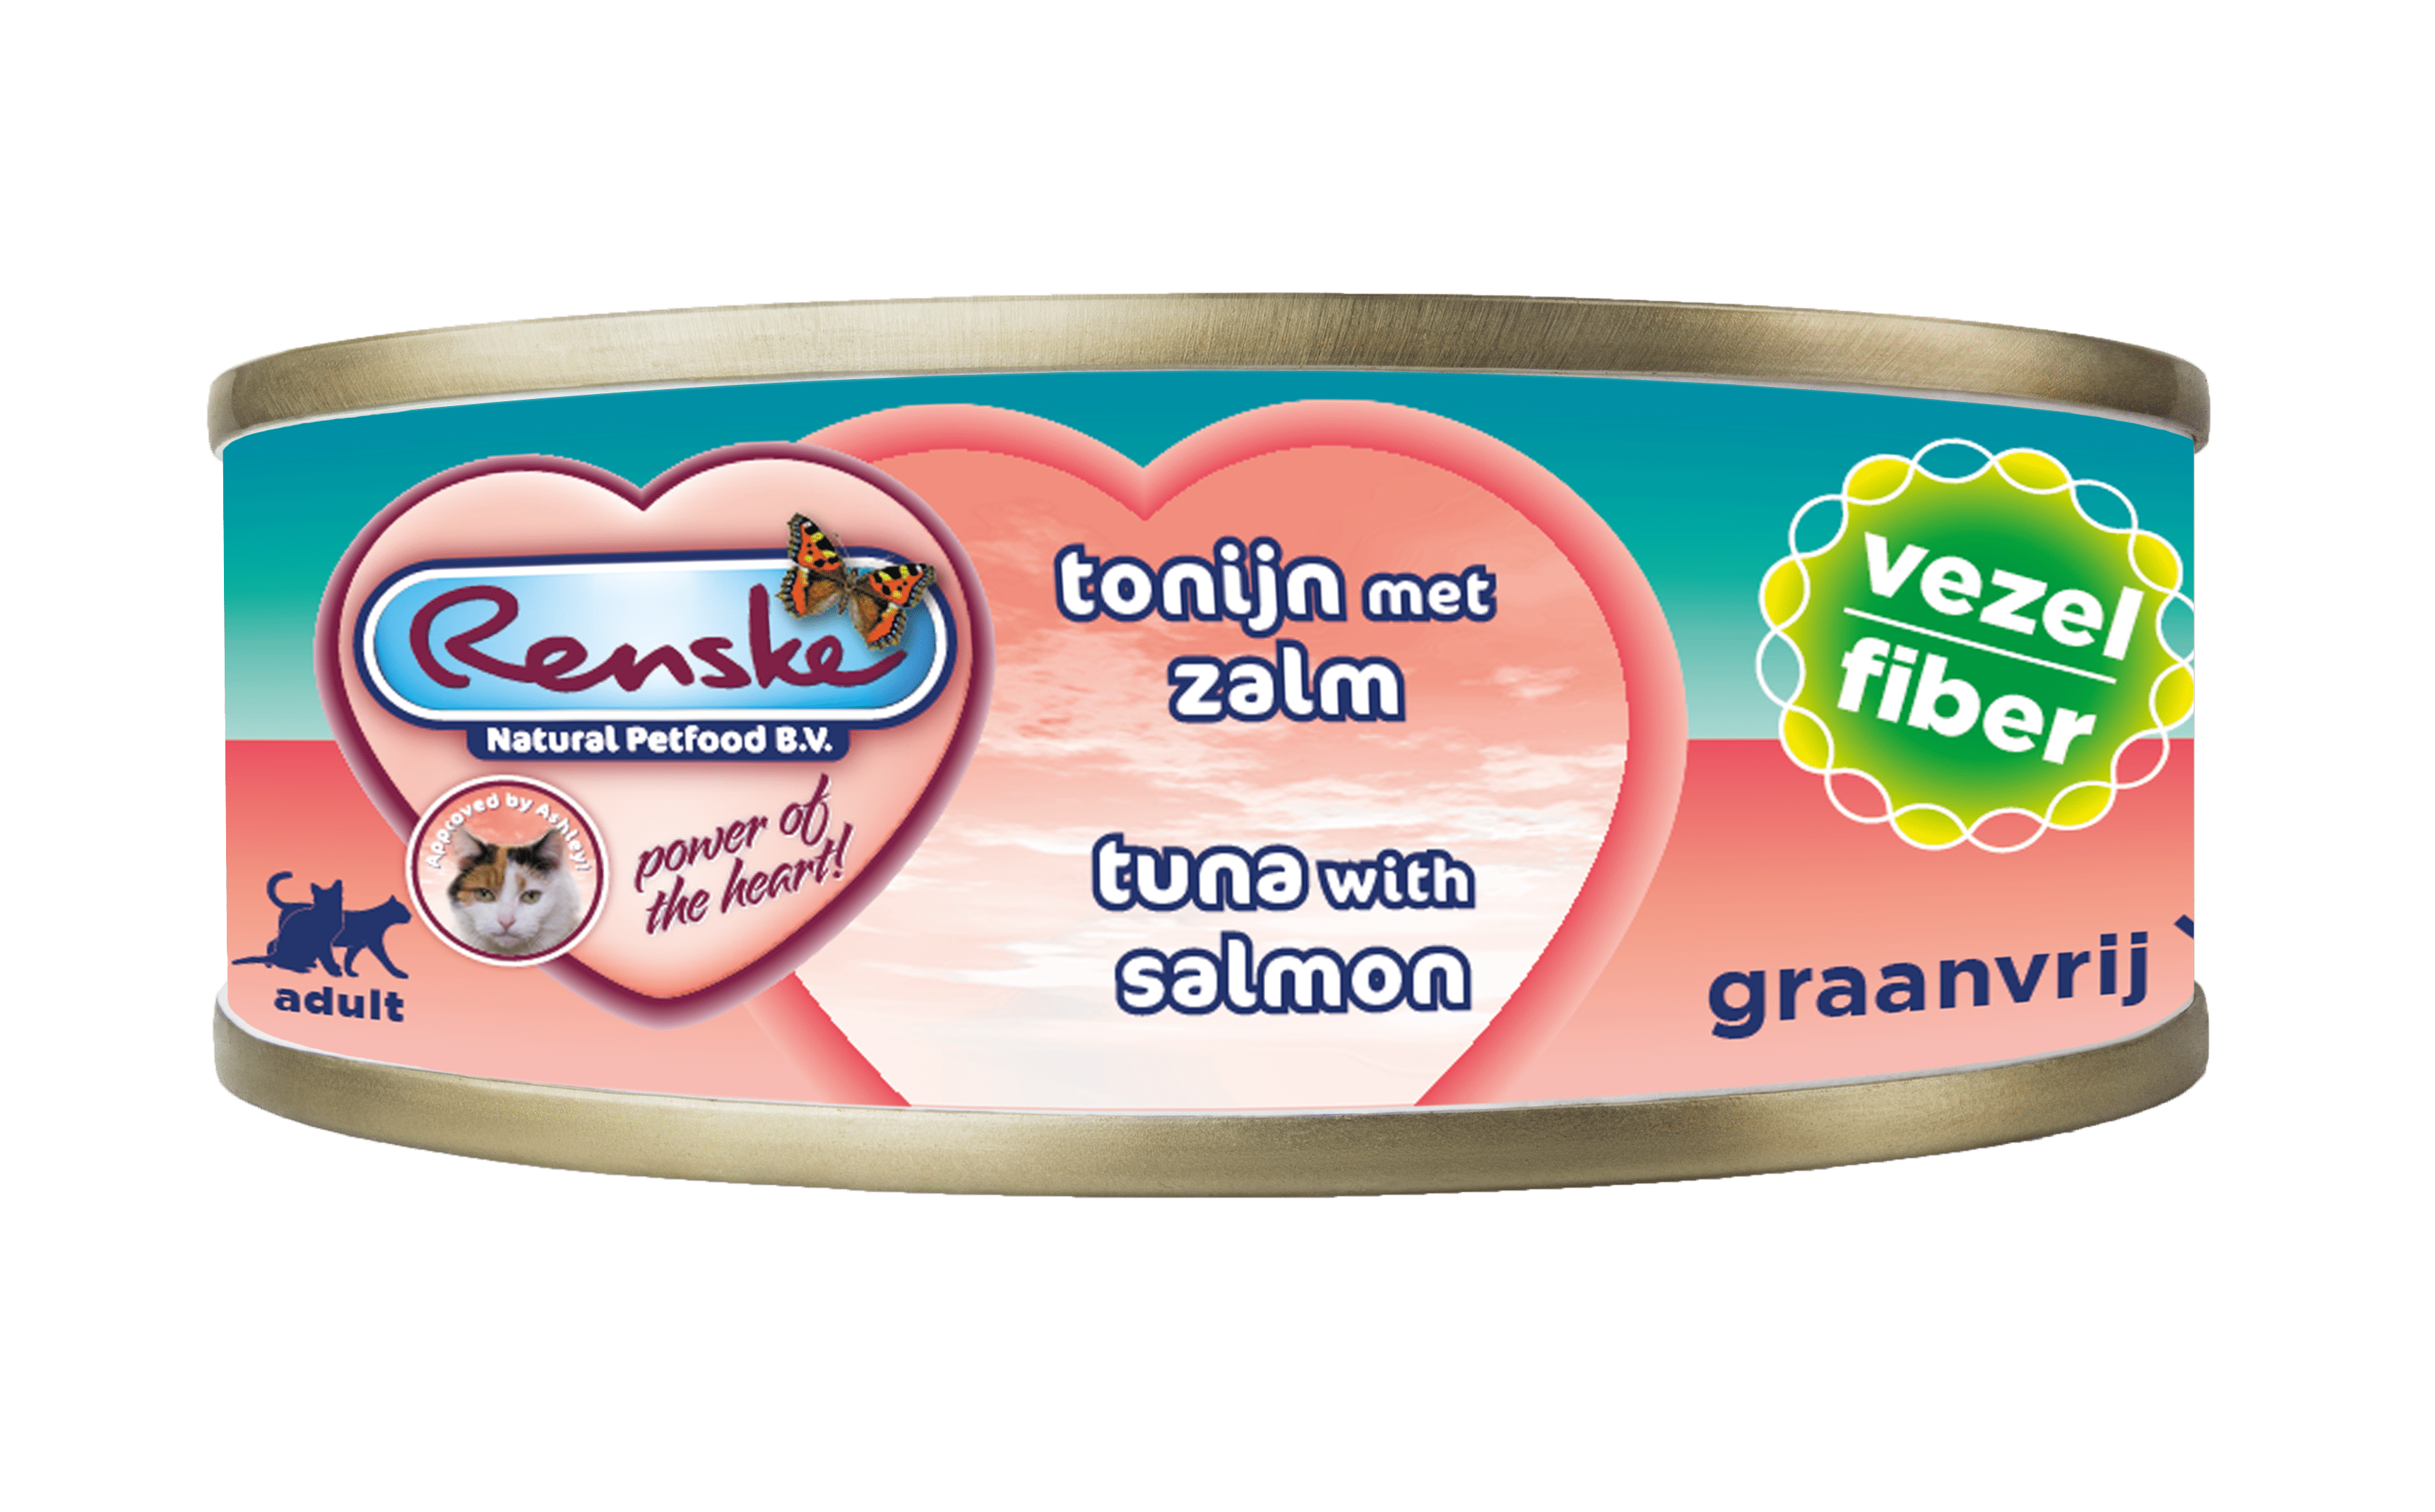 renske-70g-kat-tonijn-met-zalm-vezel-productfoto_optimized